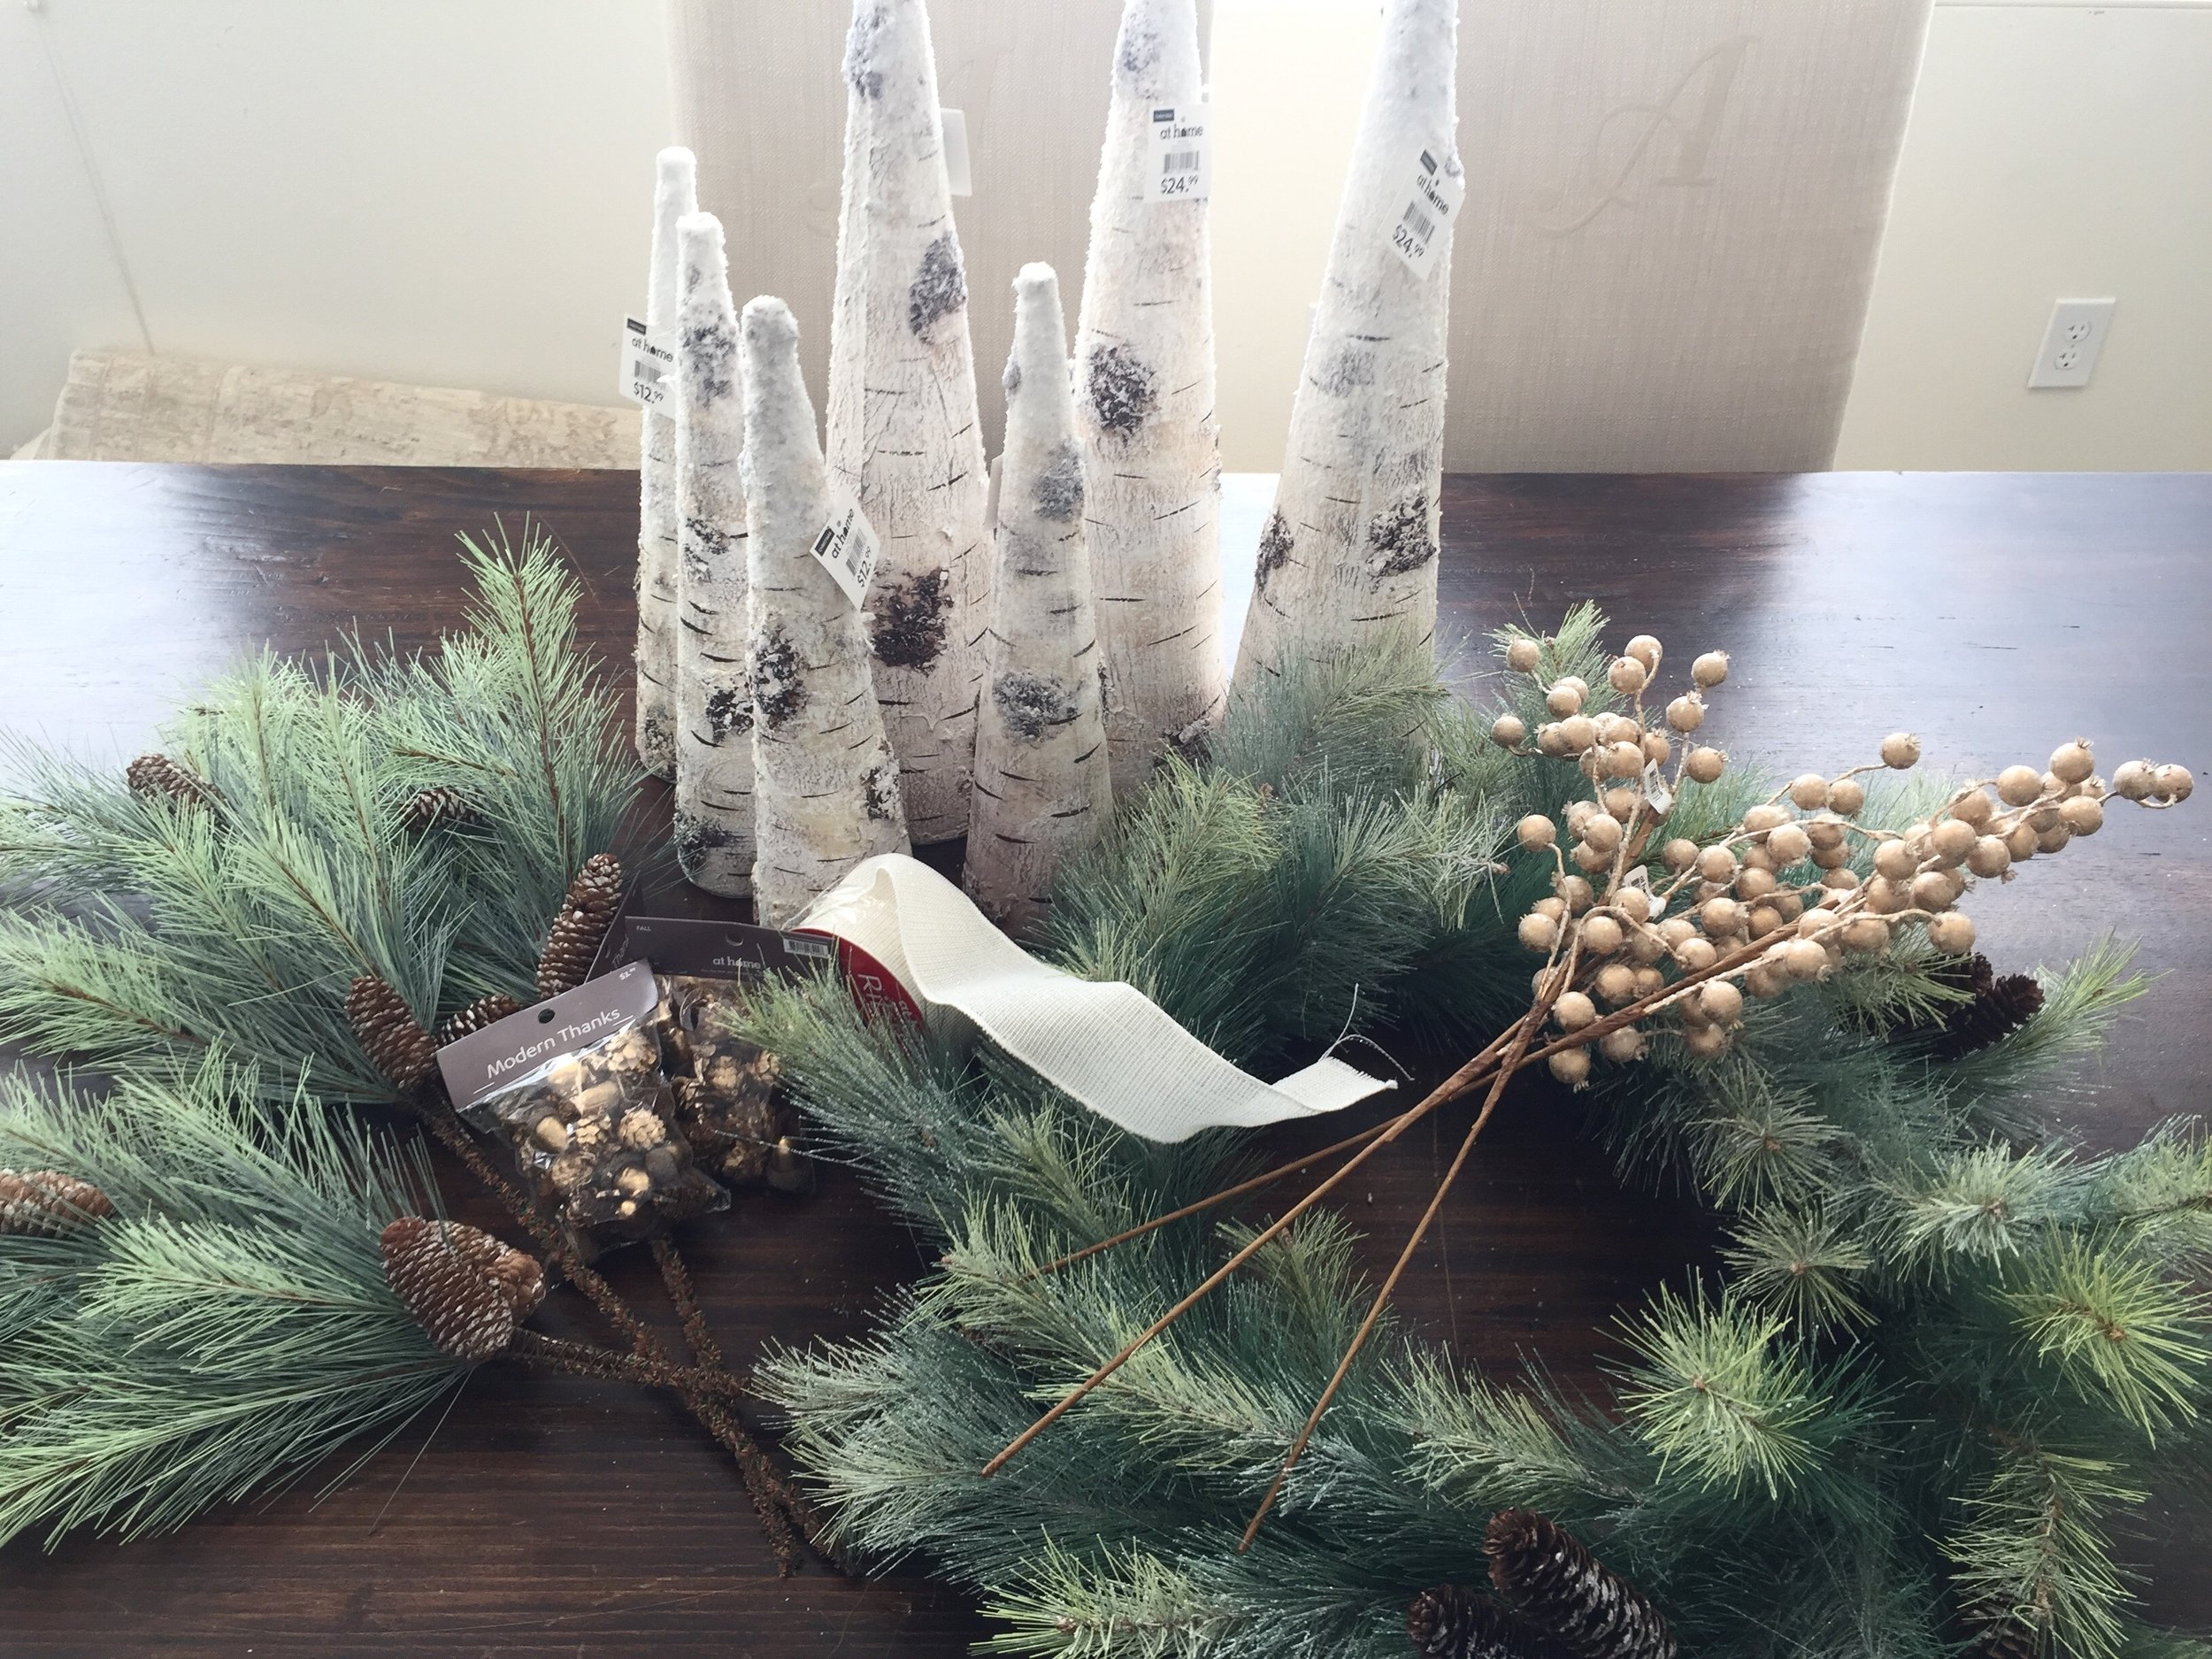 Christmas Decor purchases from At Home Stores #christmasdecorating #christmasdecor